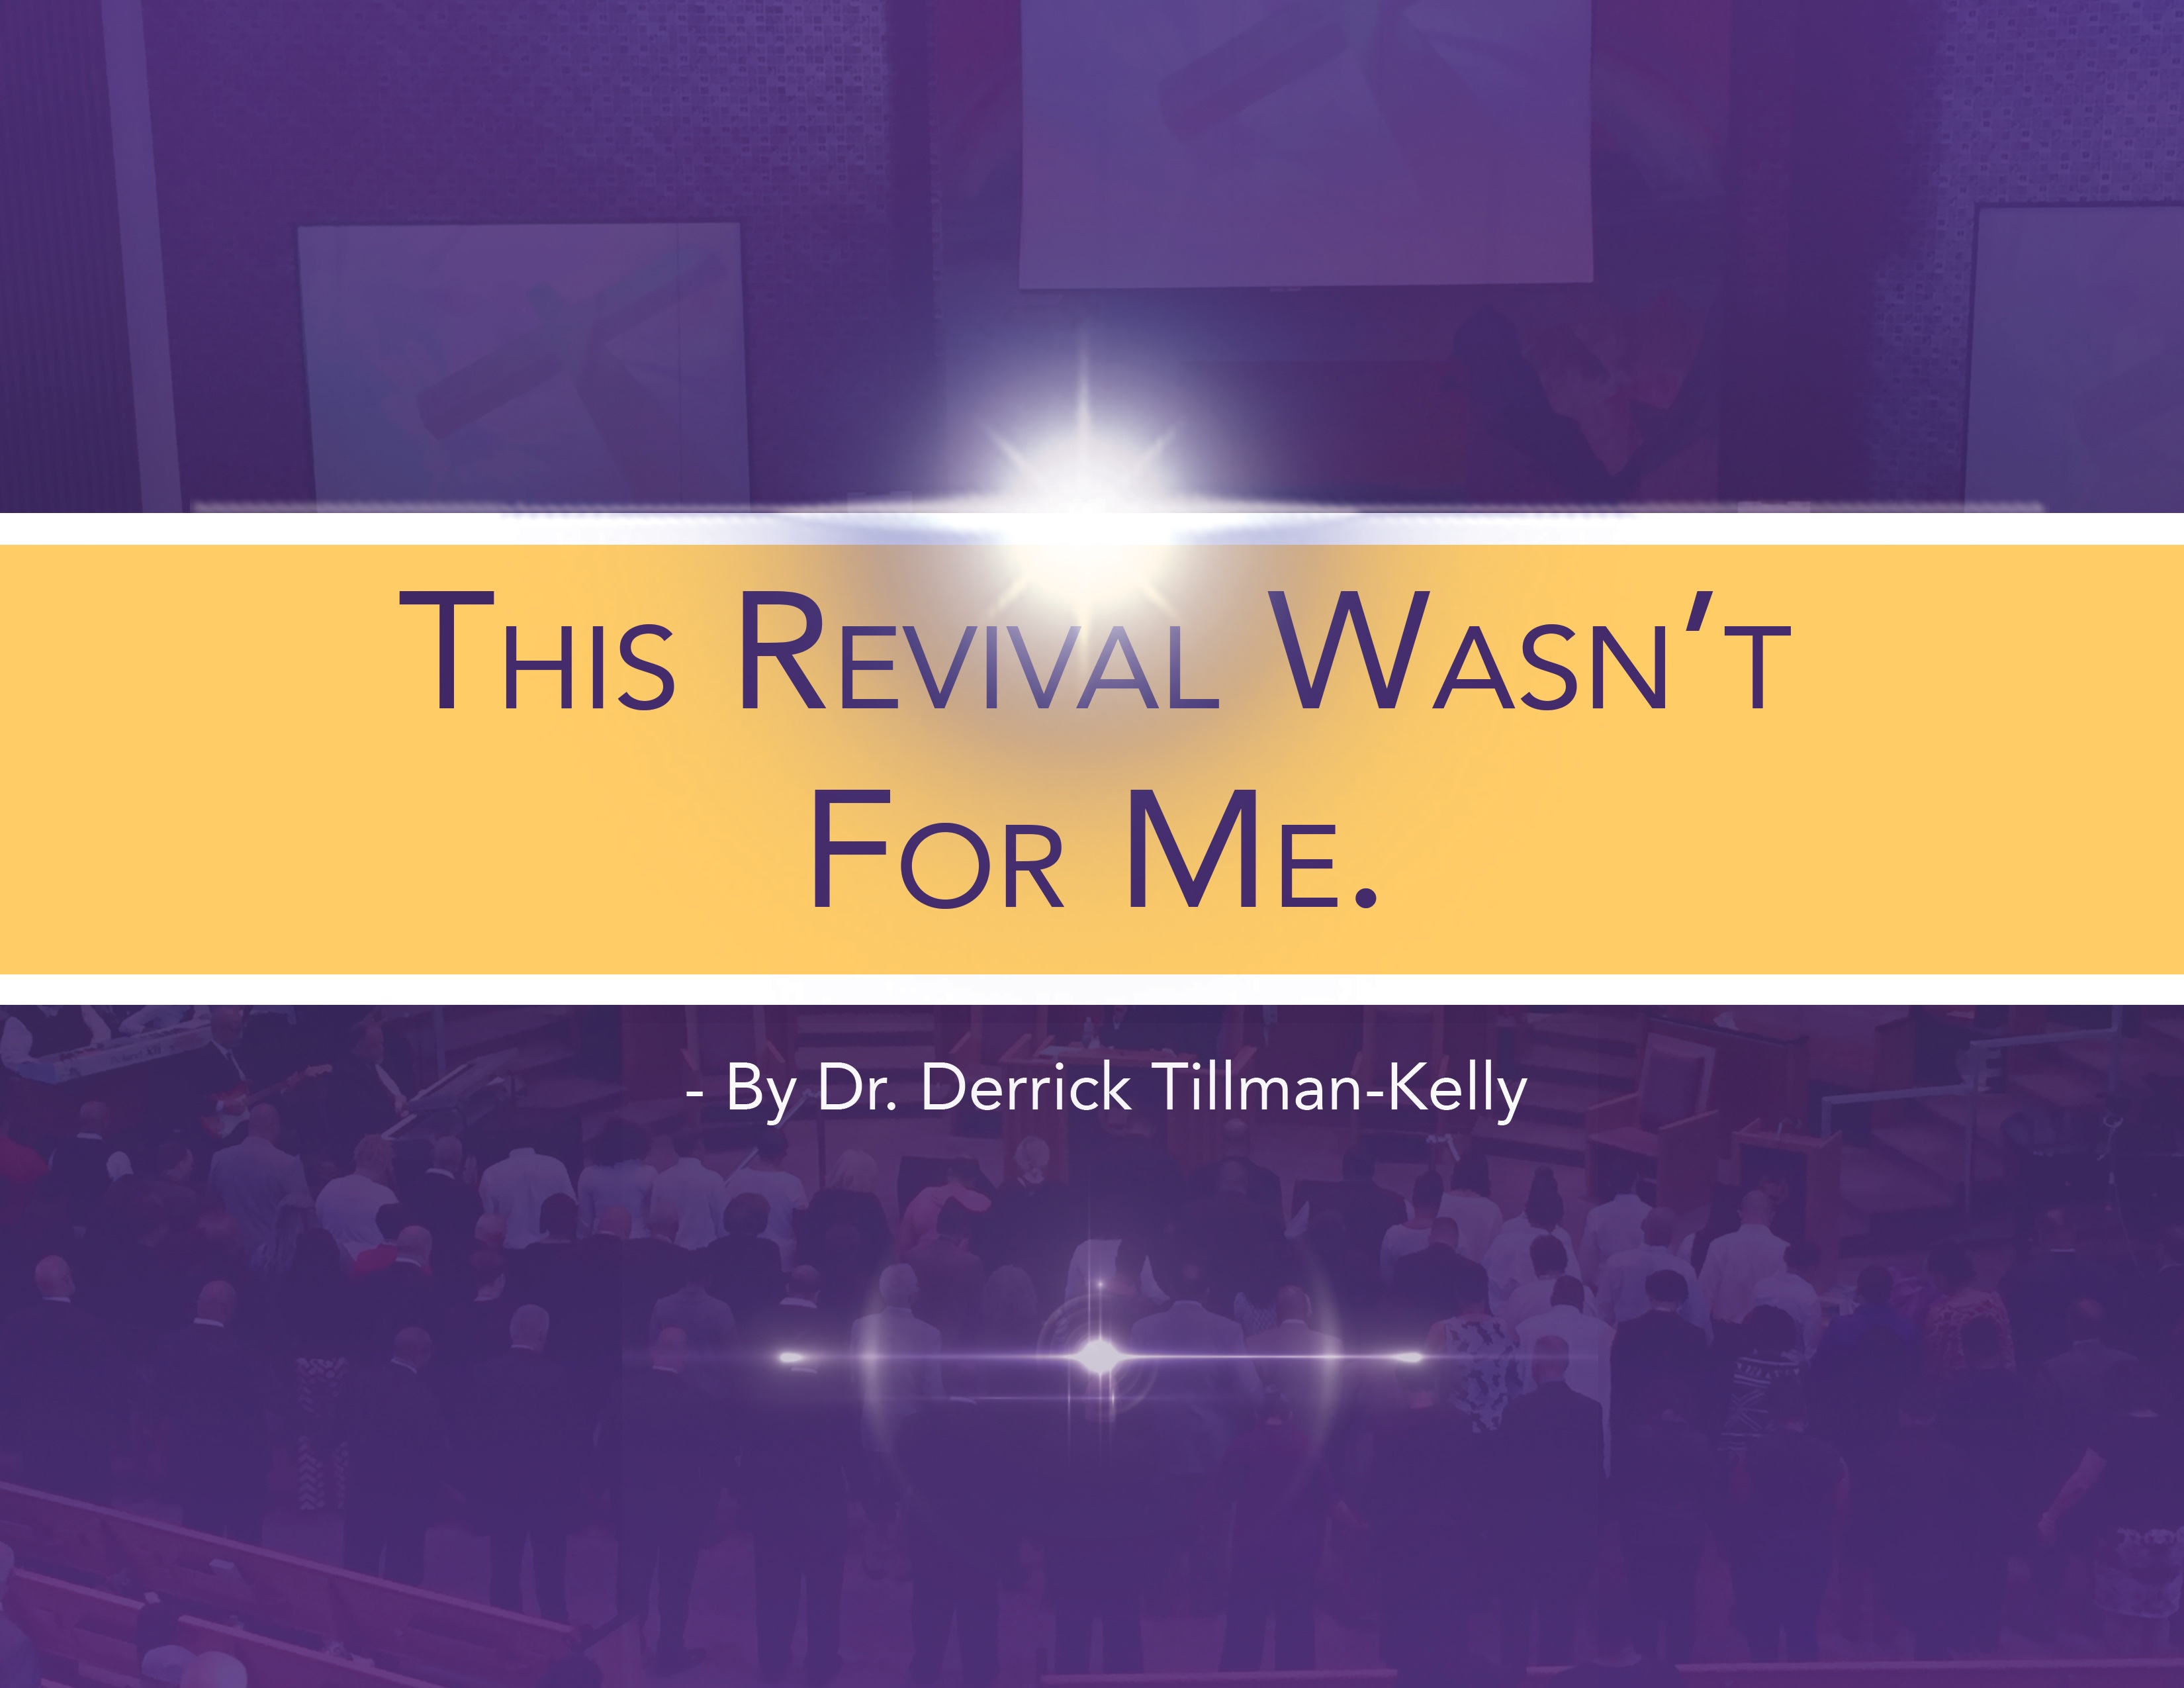 This Revival Wasn't For Me - Derrick Tillman-Kelly